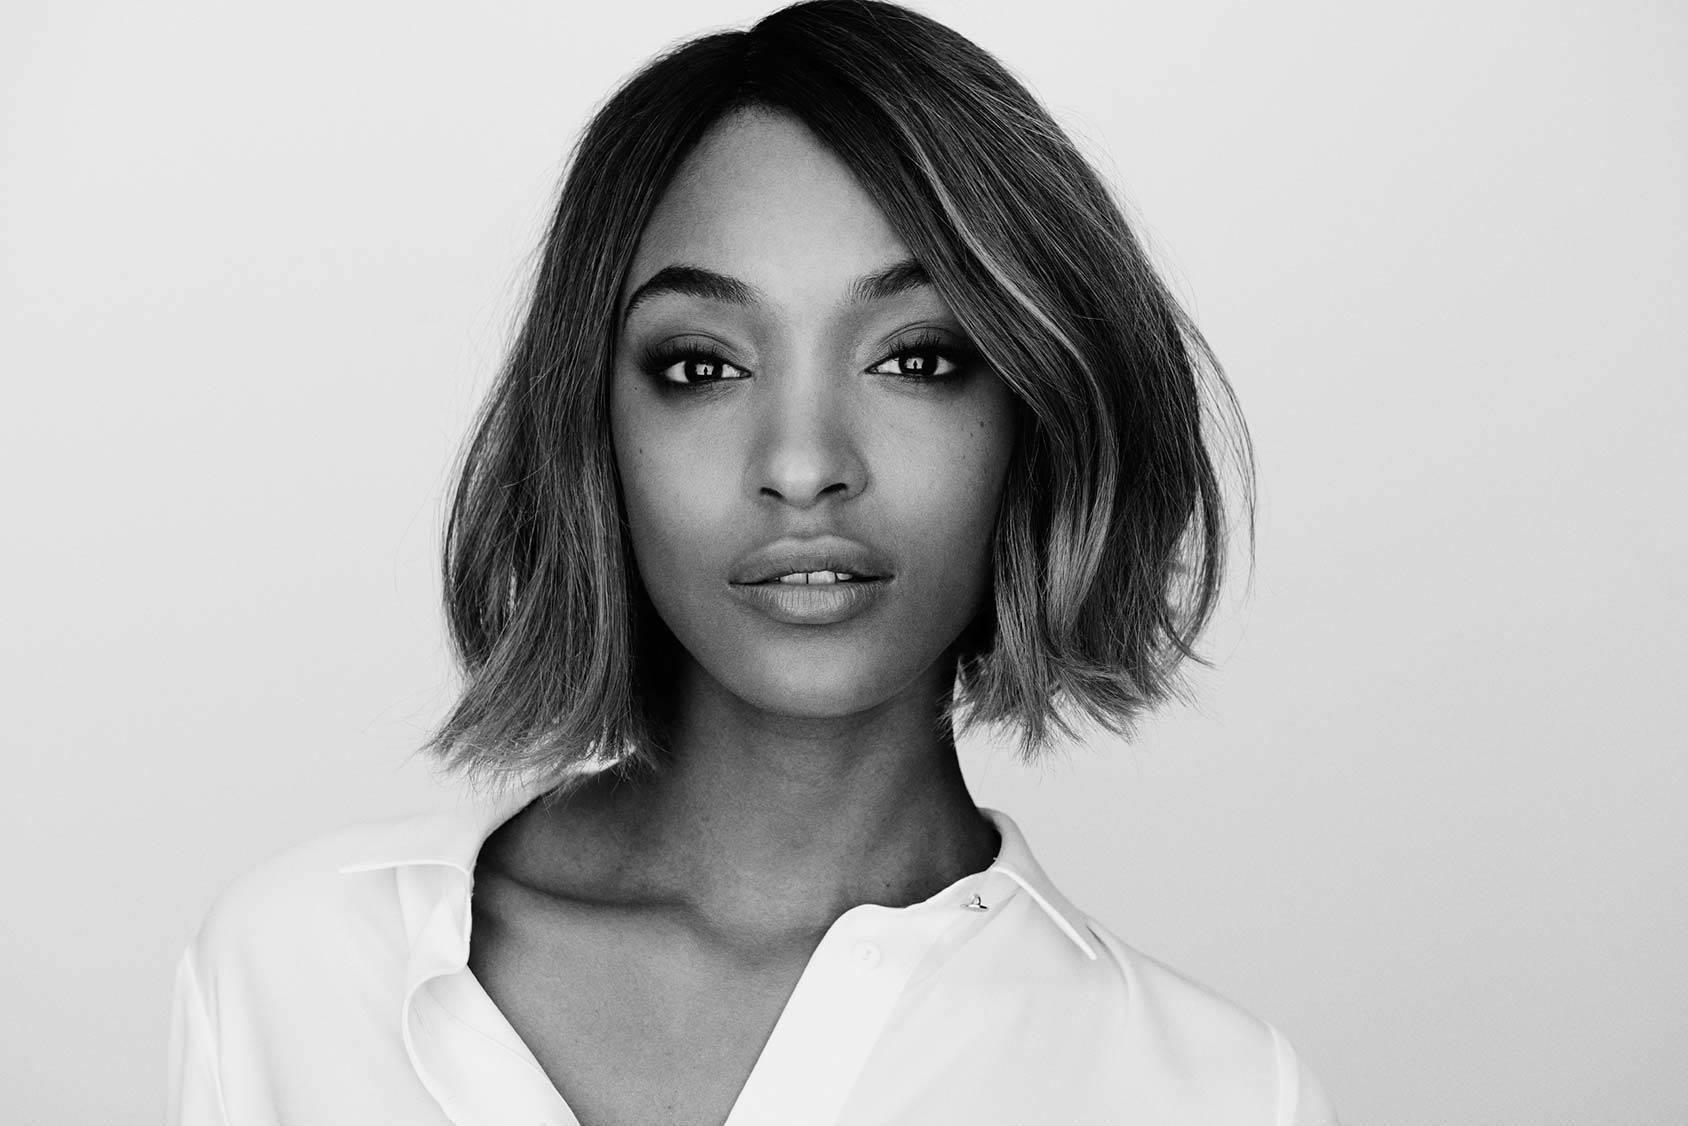 London born top model Jourdan Dunn, Viktor Flumé.